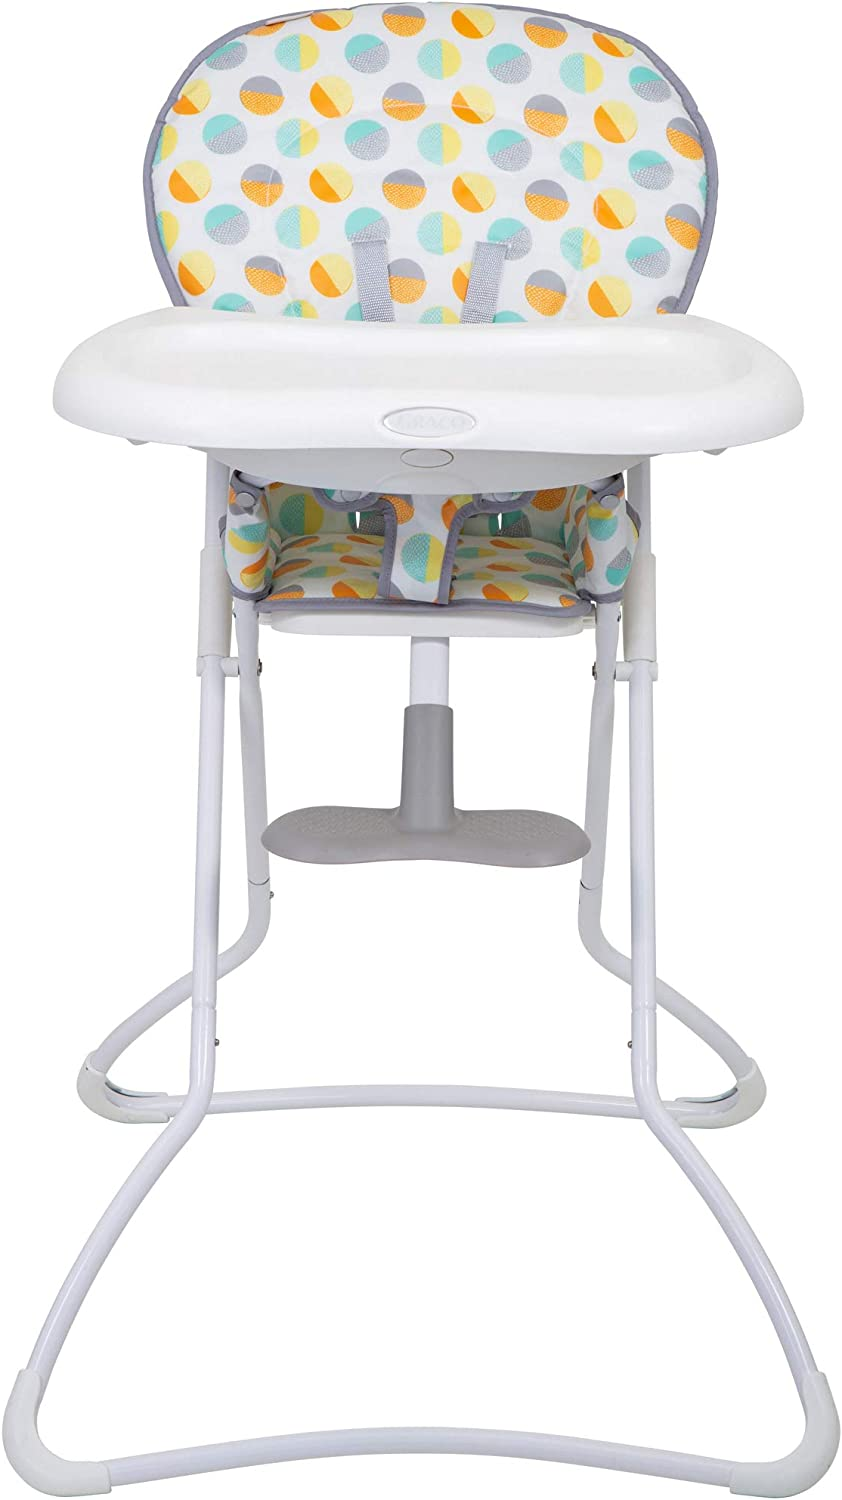 Graco Snack N/' Stow Compact Highchair Fruitella